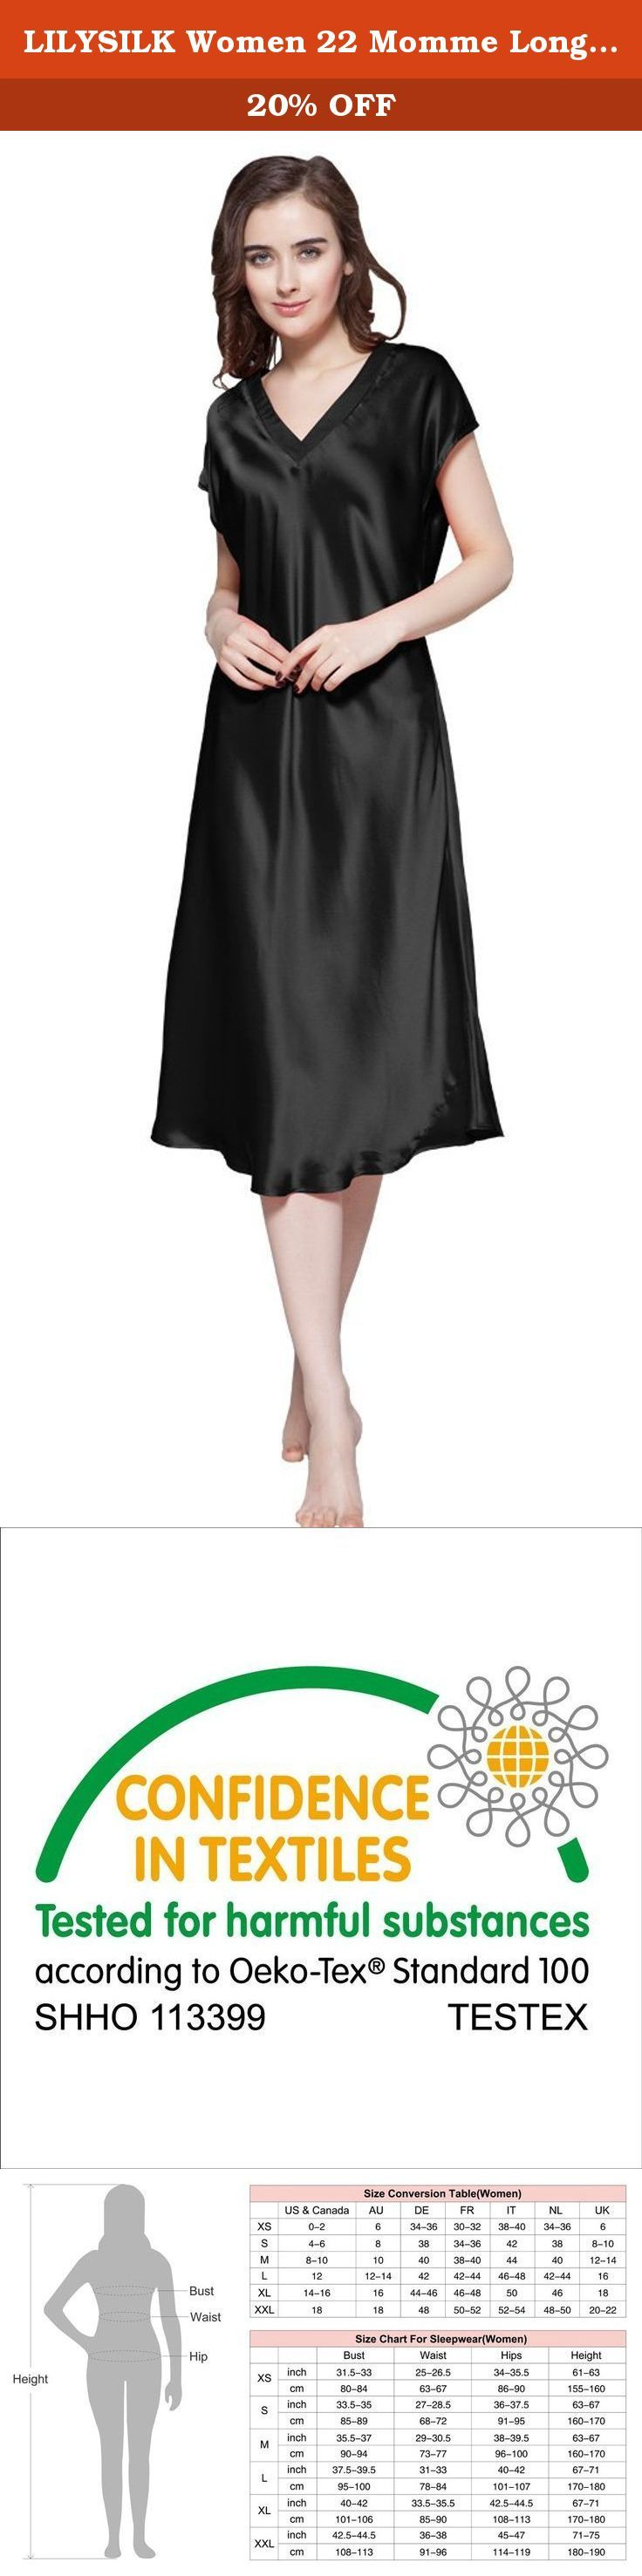 LILYSILK Women 22 Momme Long Silk Nightgown Nightdress 100% Pure Silk Black XL. Unique and stylish, this free style nightwear adds sophistication to summer sleepwear, which is just as cozy as it is comfortable. With cool style and luxurious color, this silk nightgowns is truly a work of art. Exquisitely details of this long silk nightgown are only for you, who have the best tastes. Pajama Features: 100% mulberry silk Durable stitching that will last Material: 100% silk of 22 momme silk...